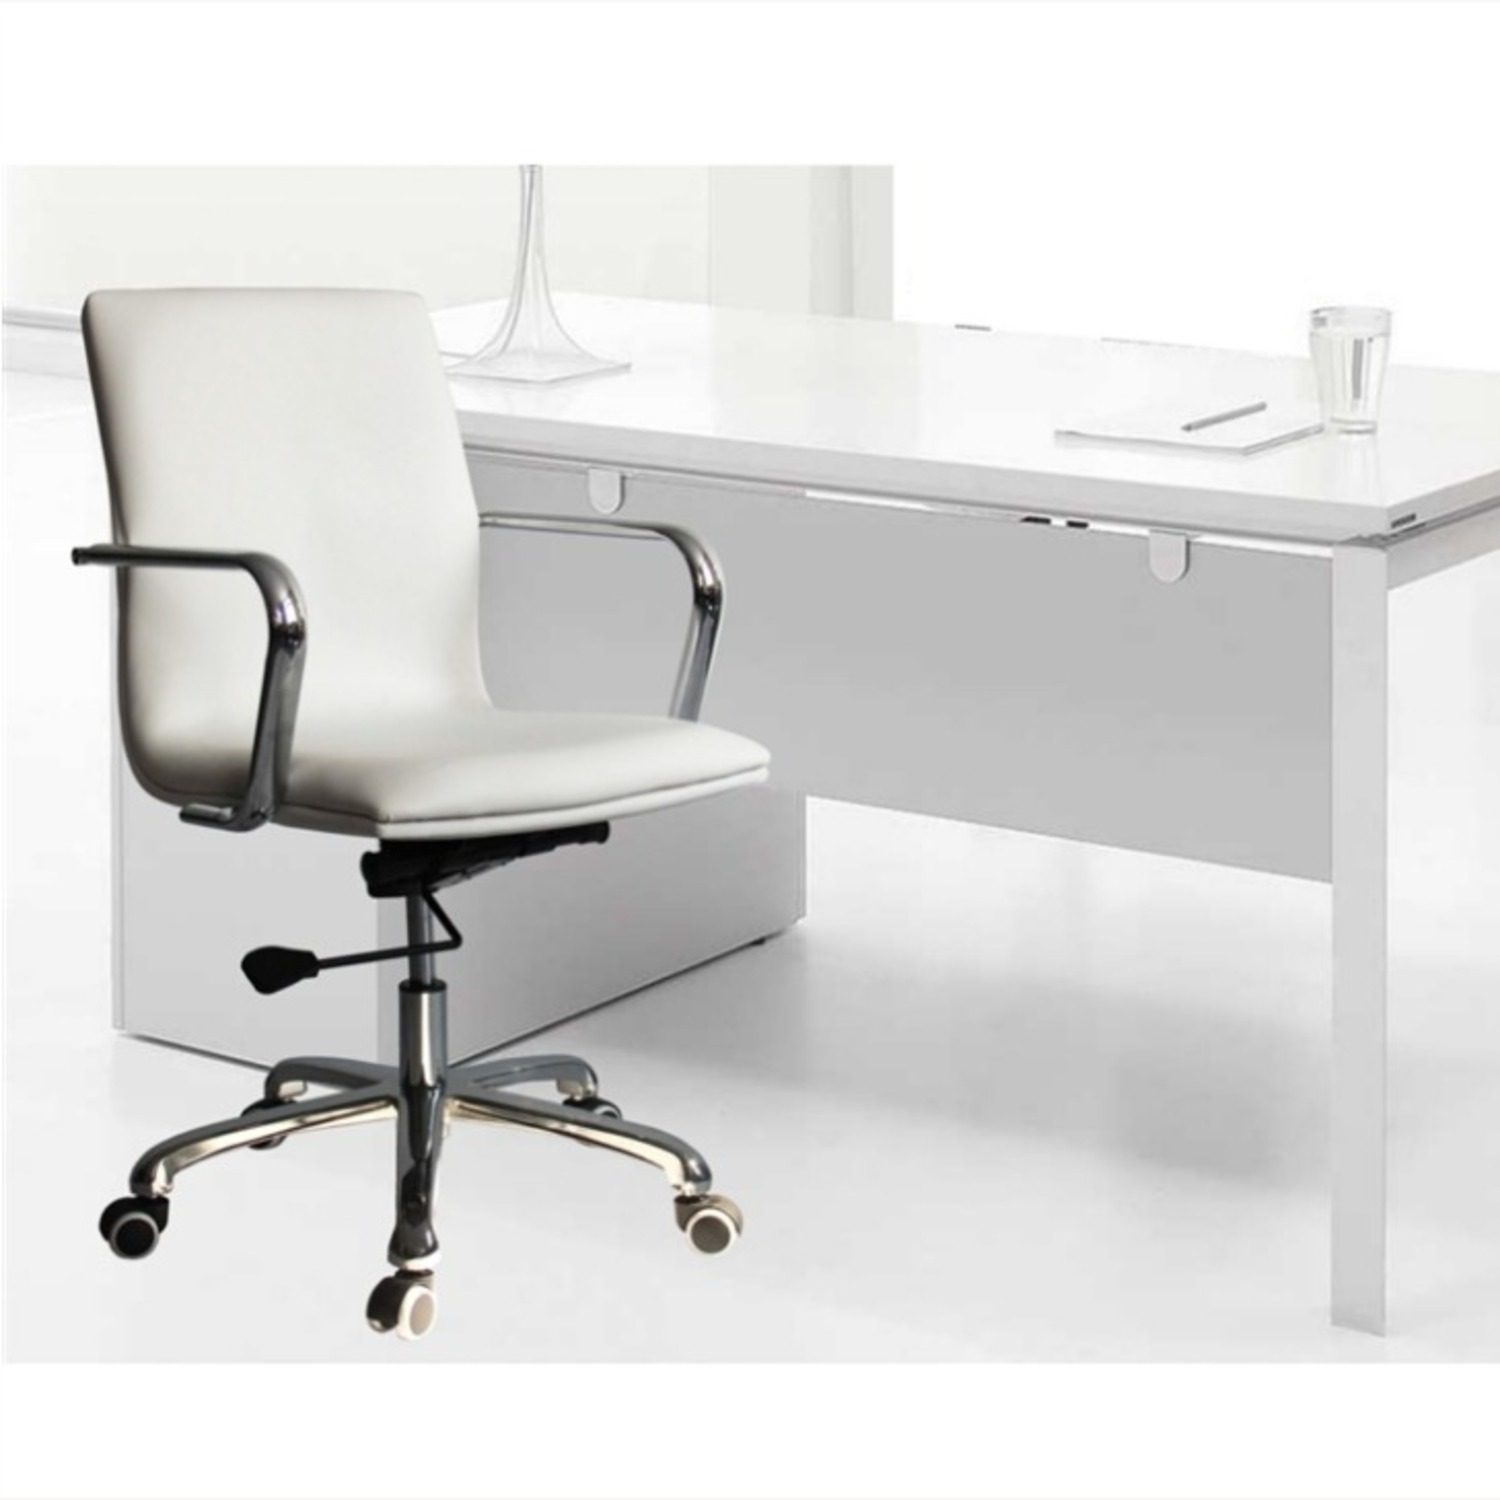 Office Chair In Mid-Back White Leatherette Finish - image-3